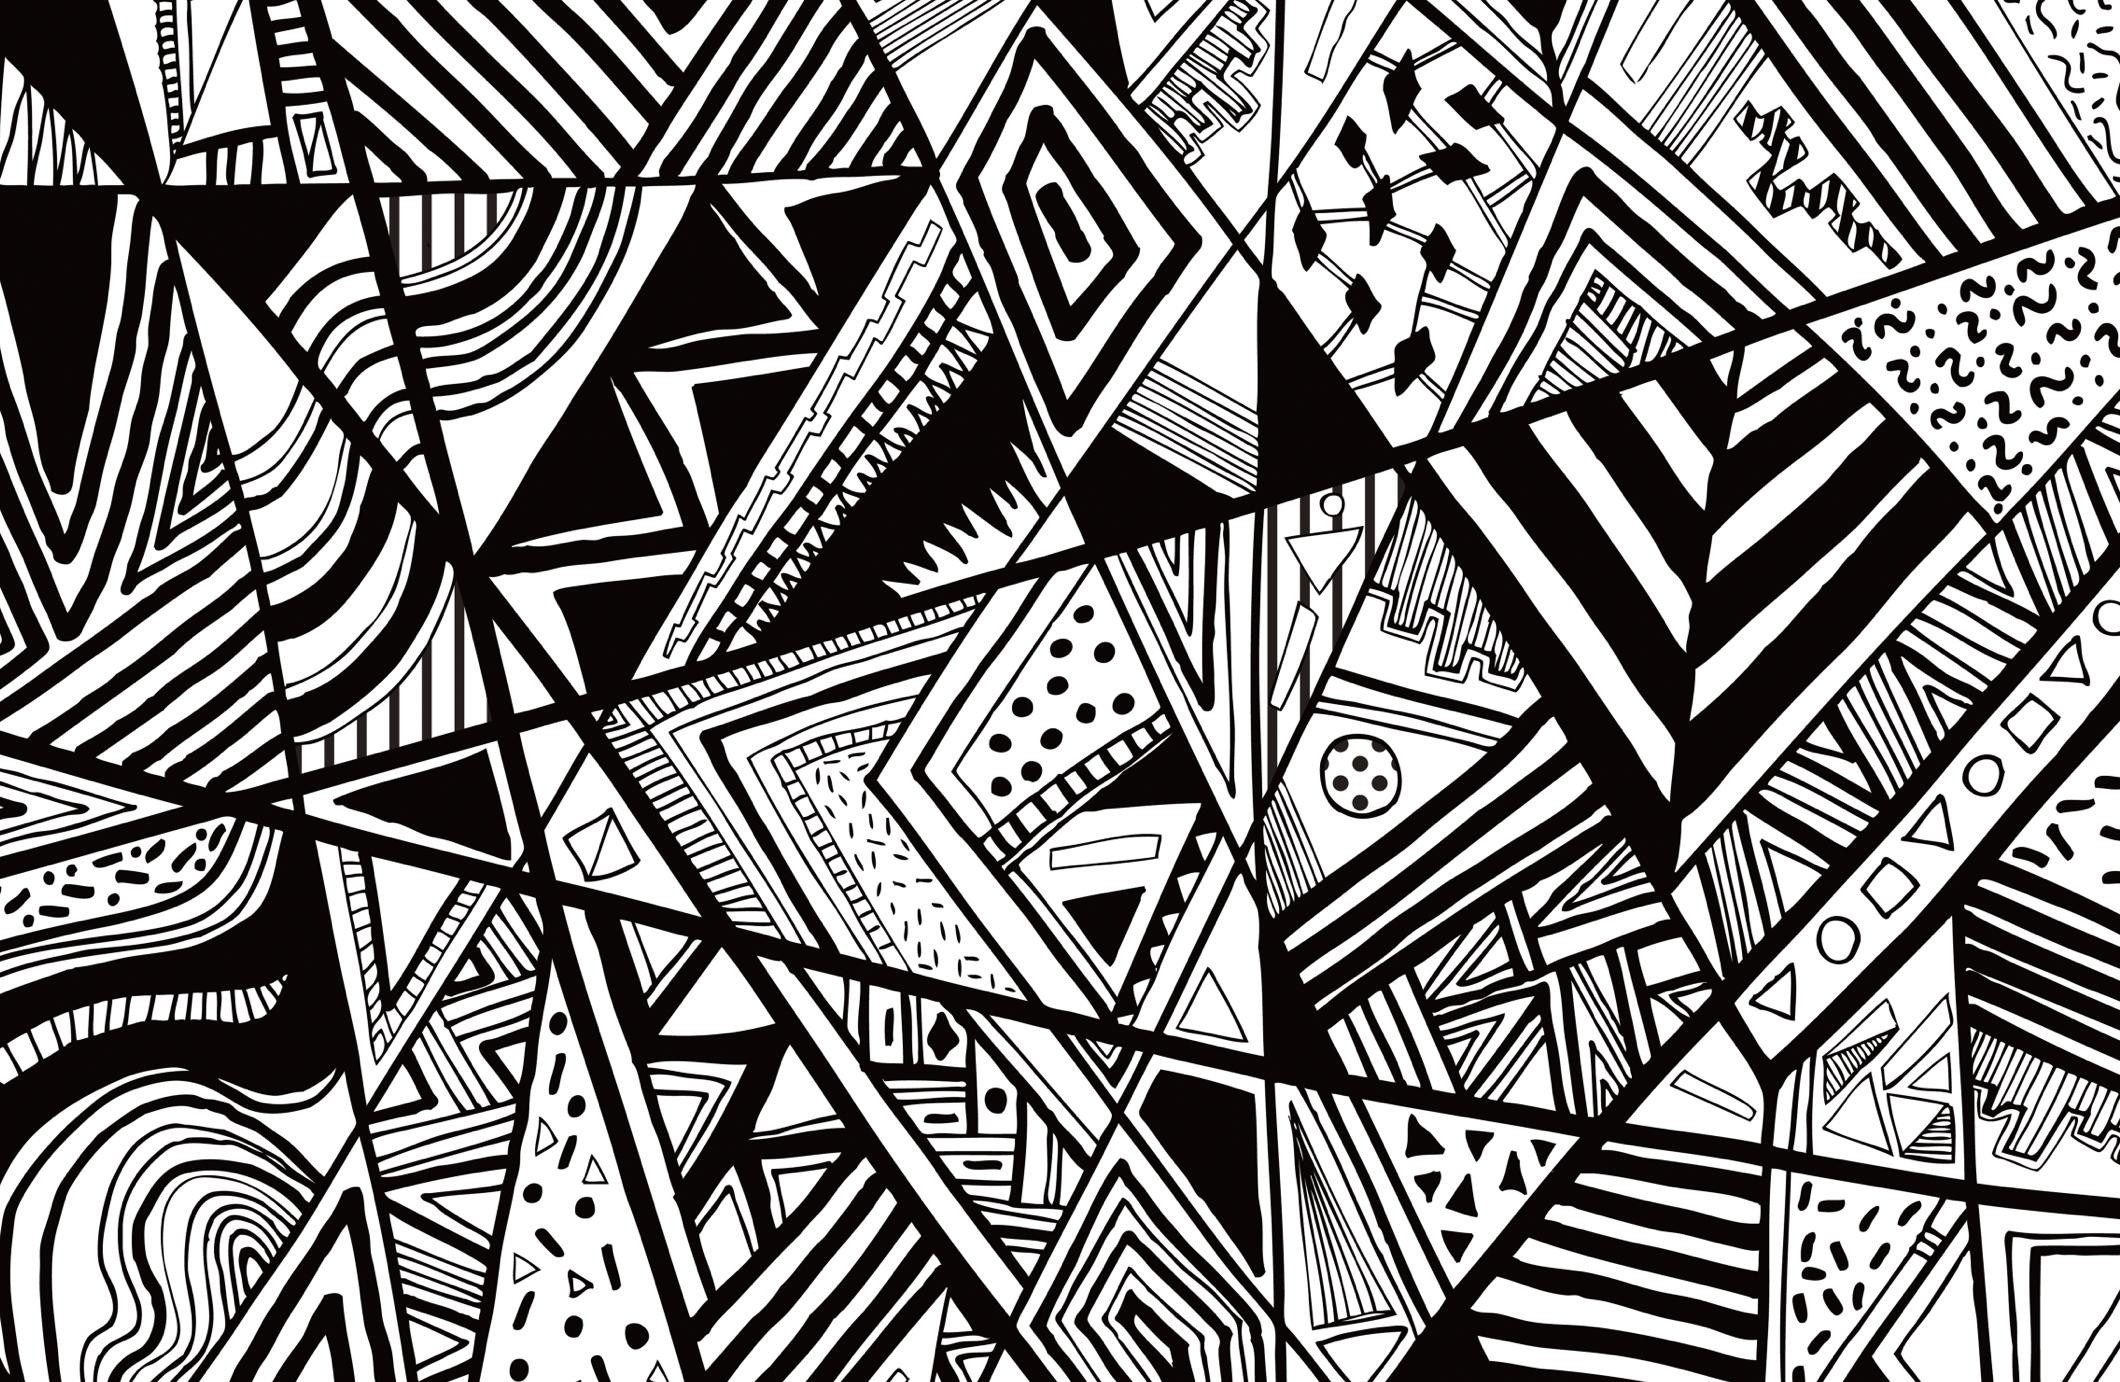 black and white abstract wallpaper (5) - download hd wallpapers